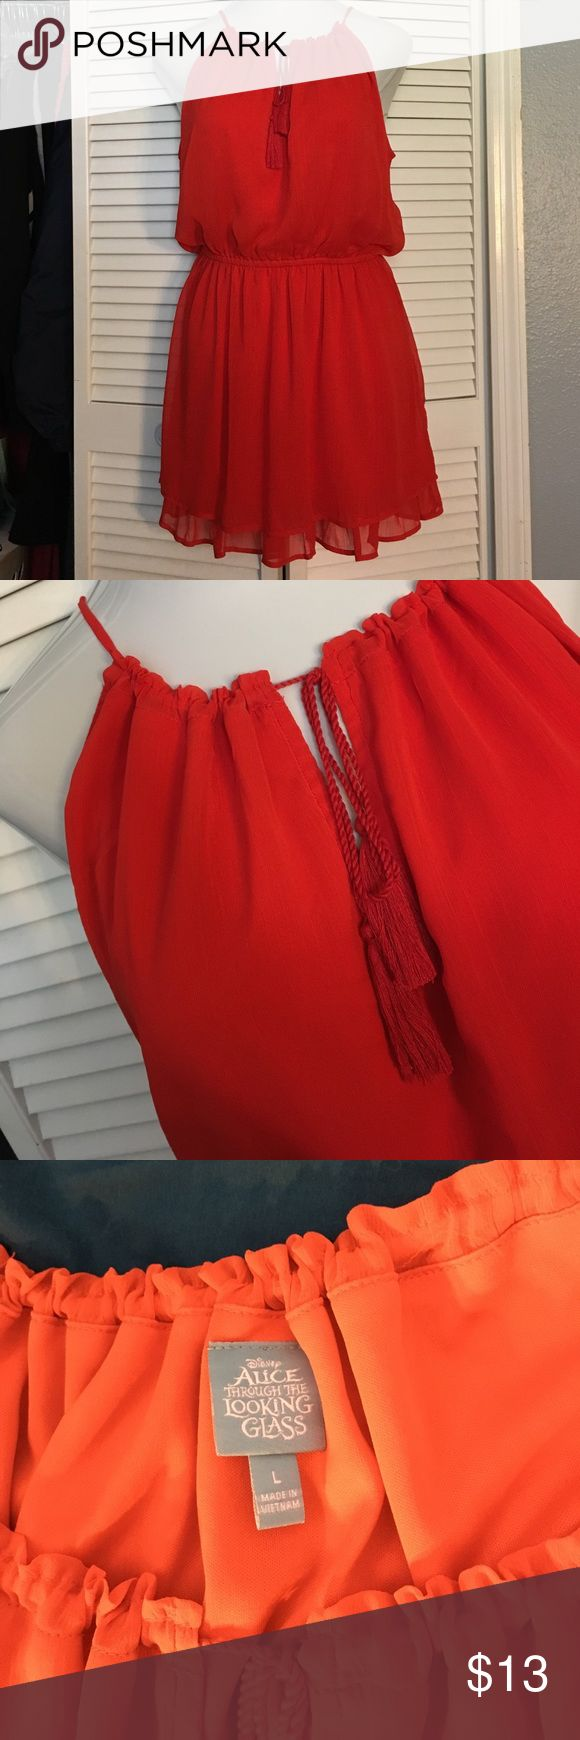 "Bright orange dress Disneys alice through the looking glass line, Adjustable neckline, decorative front tie detail, elastic neckline, chiffon layers, no tags but never worn, armpit to hemline measures 25"" Disney Dresses"